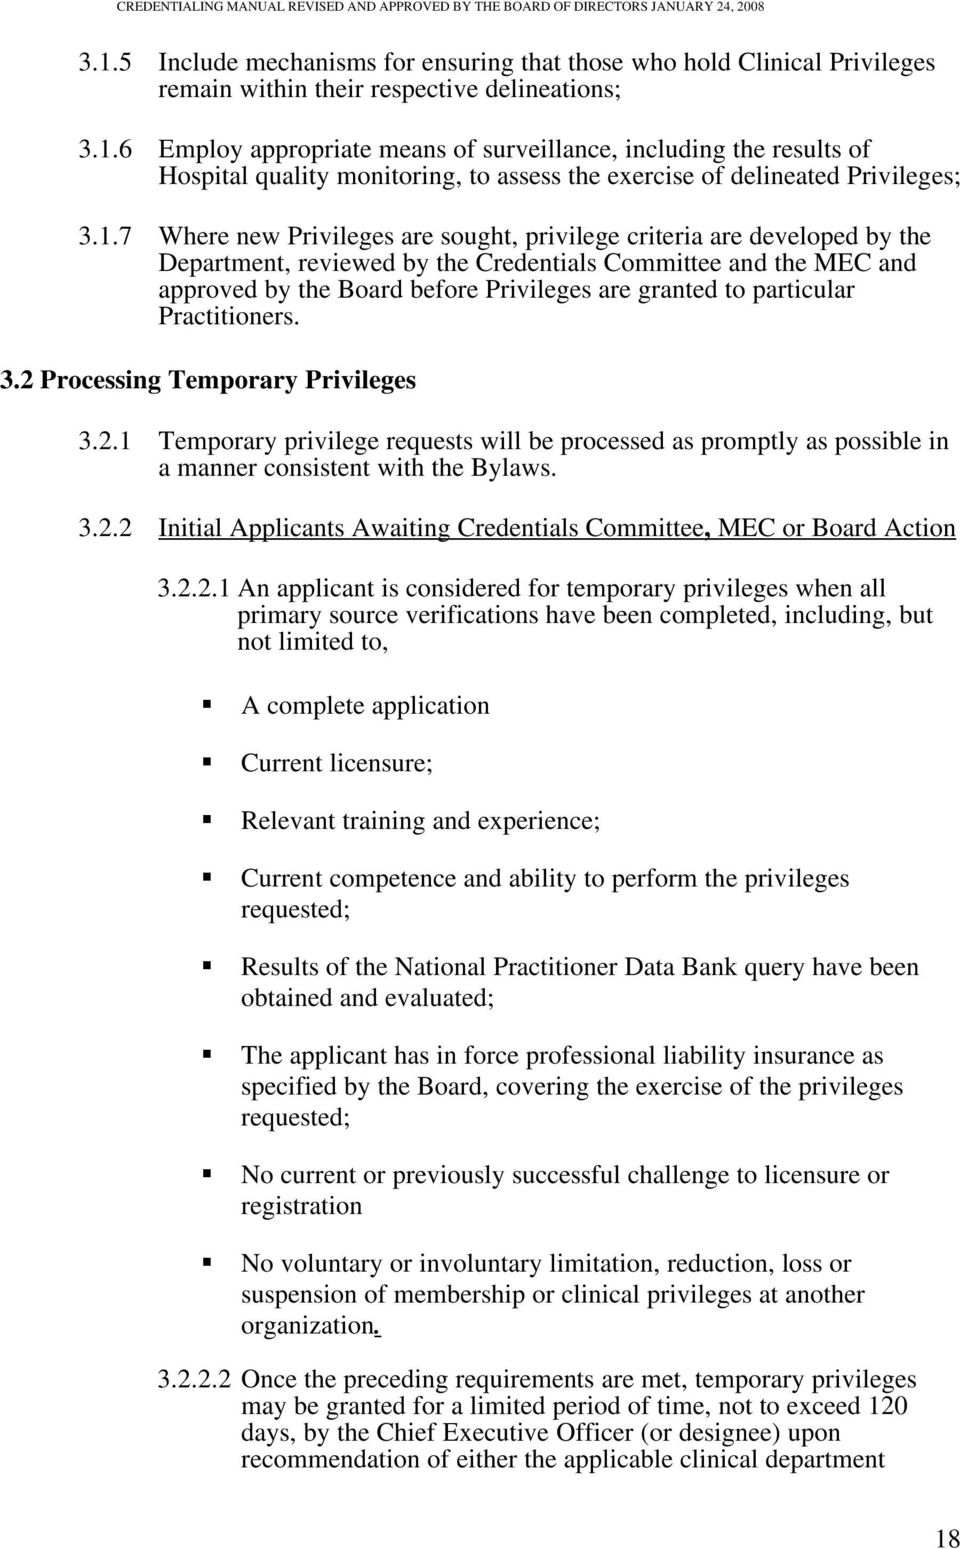 particular Practitioners. 3.2 Processing Temporary Privileges 3.2.1 Temporary privilege requests will be processed as promptly as possible in a manner consistent with the Bylaws. 3.2.2 Initial Applicants Awaiting Credentials Committee, MEC or Board Action 3.